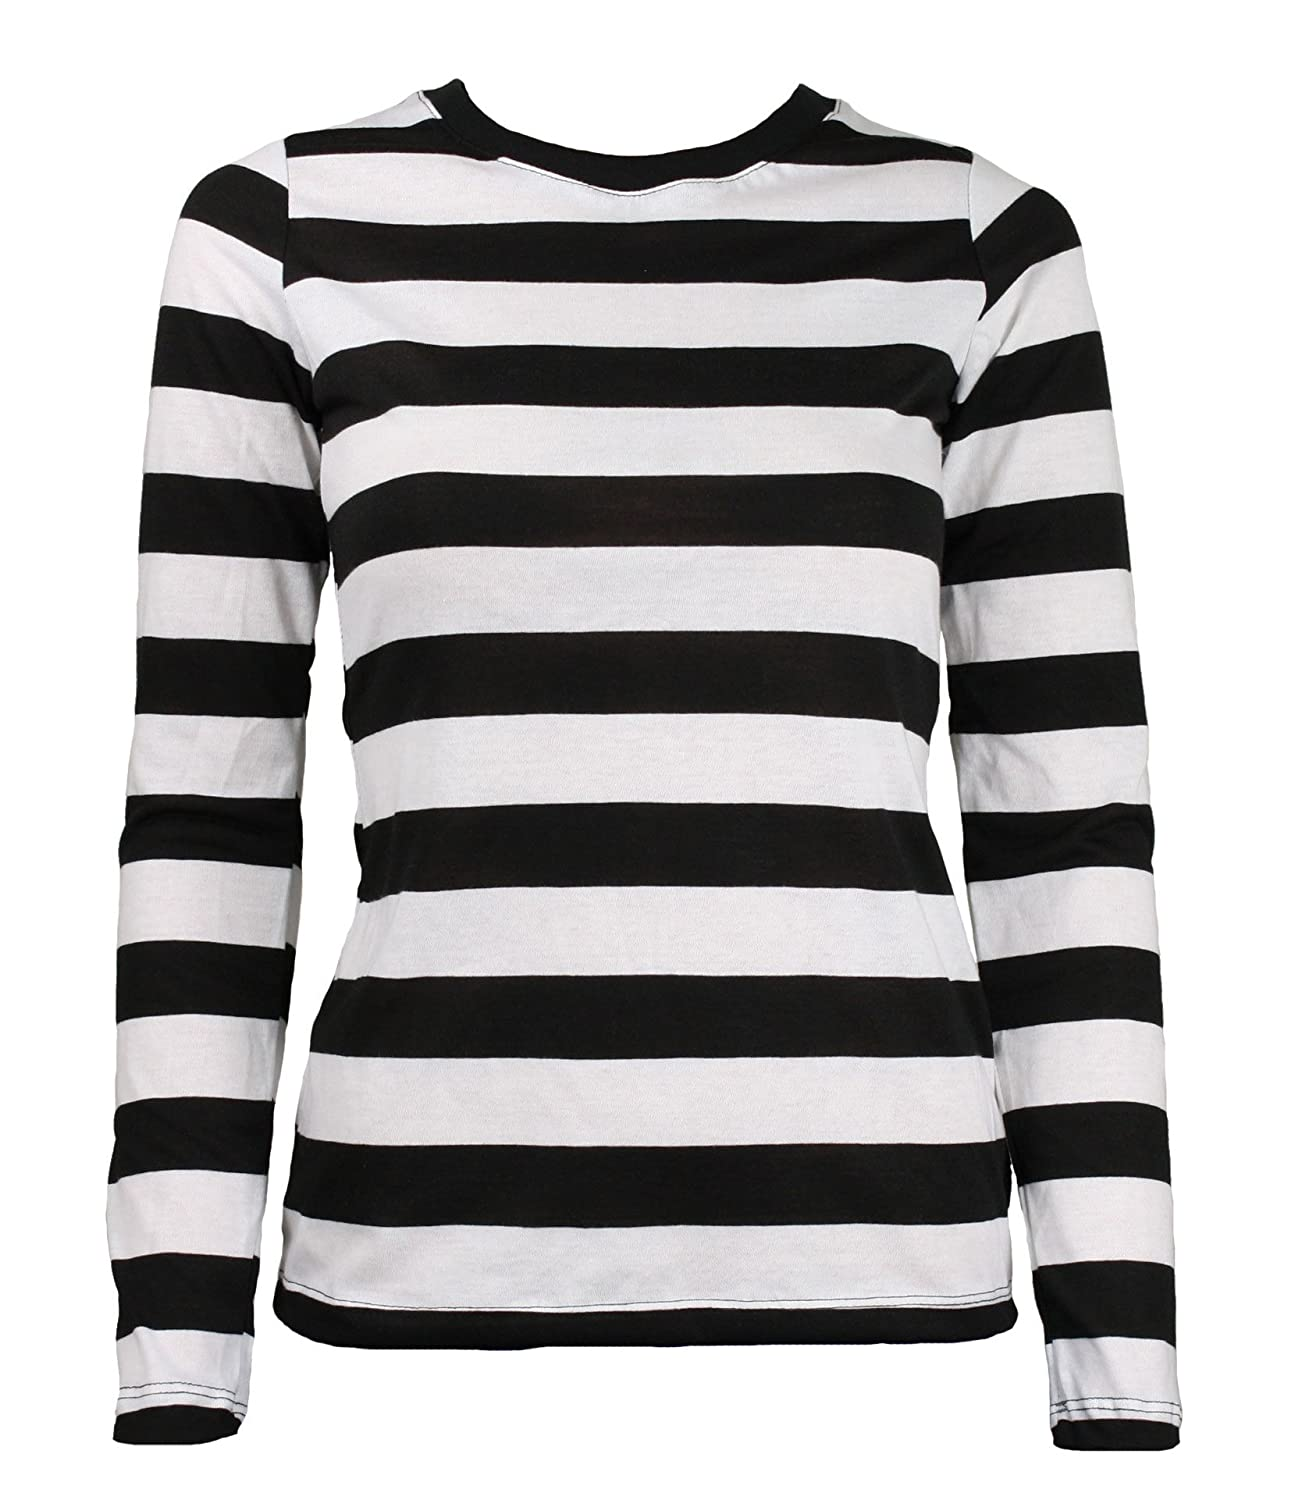 Black and white long sleeve shirt south park t shirts for Black and white striped long sleeve shirt women